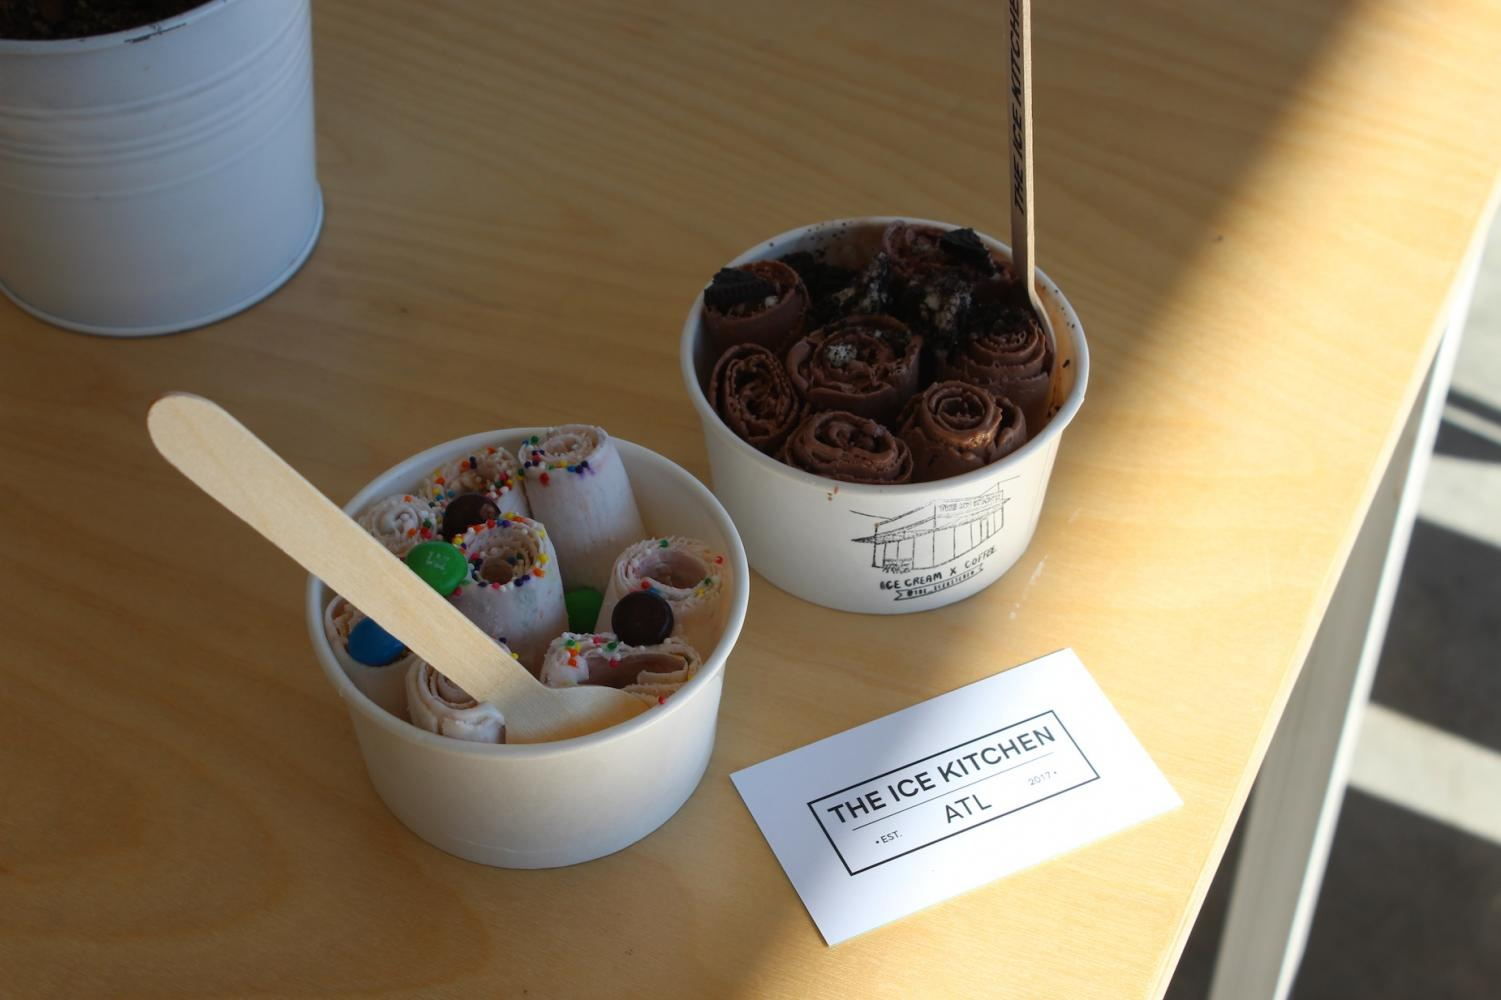 The Ice Kitchen brought an aesthetic and tasty spot to the Kennesaw area, offering sweet rolled ice cream and other refreshing treats.